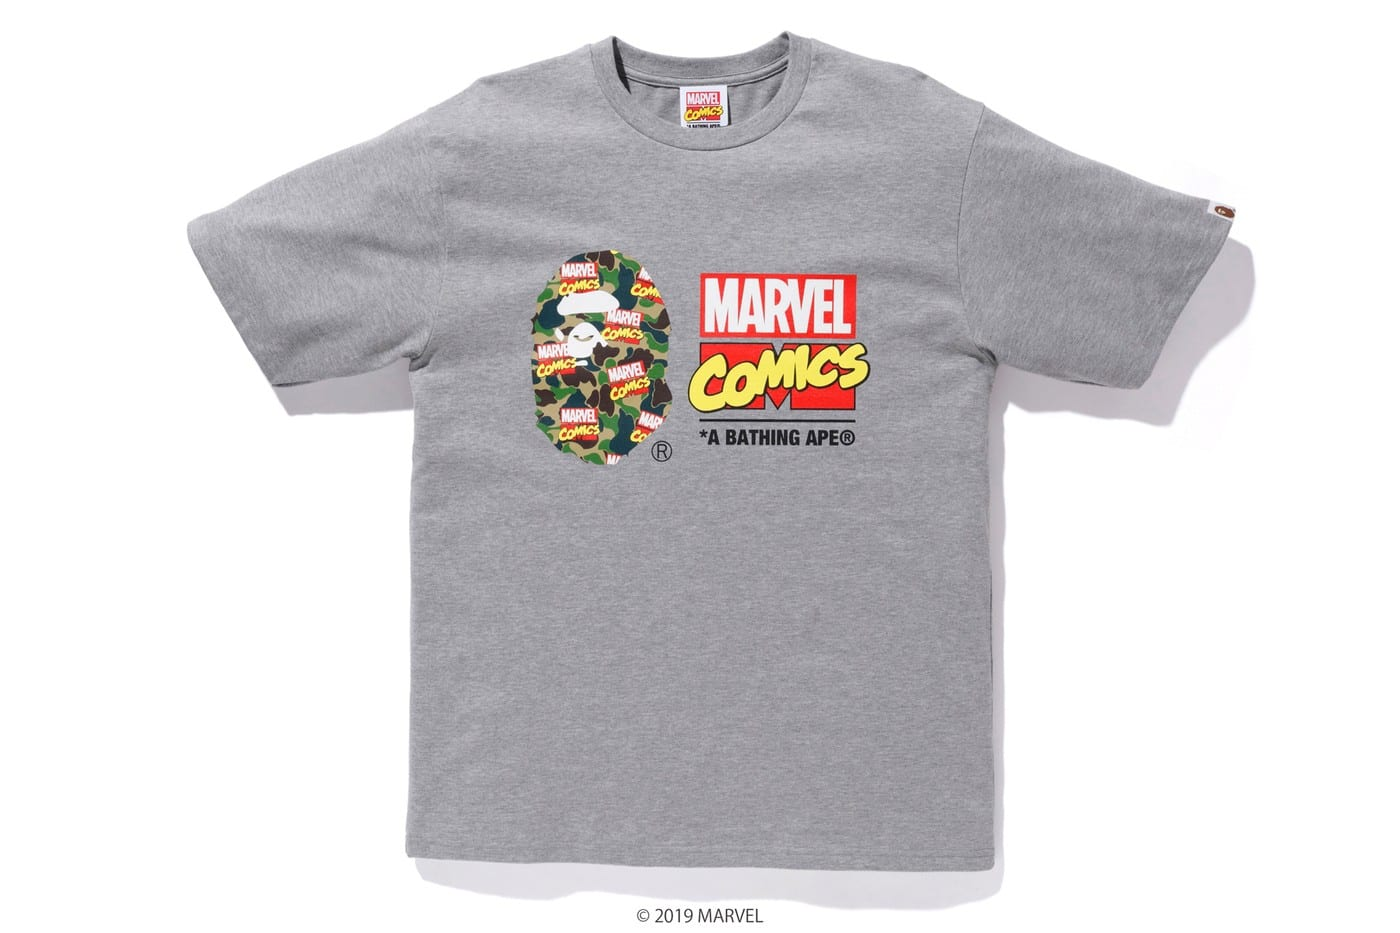 9403dd656 ... the BAPE x Marvel Comics SS19 Collection drops this Saturday (April 27)  at A Bathing Ape retail locations and online. Get a closer look at the  entire ...